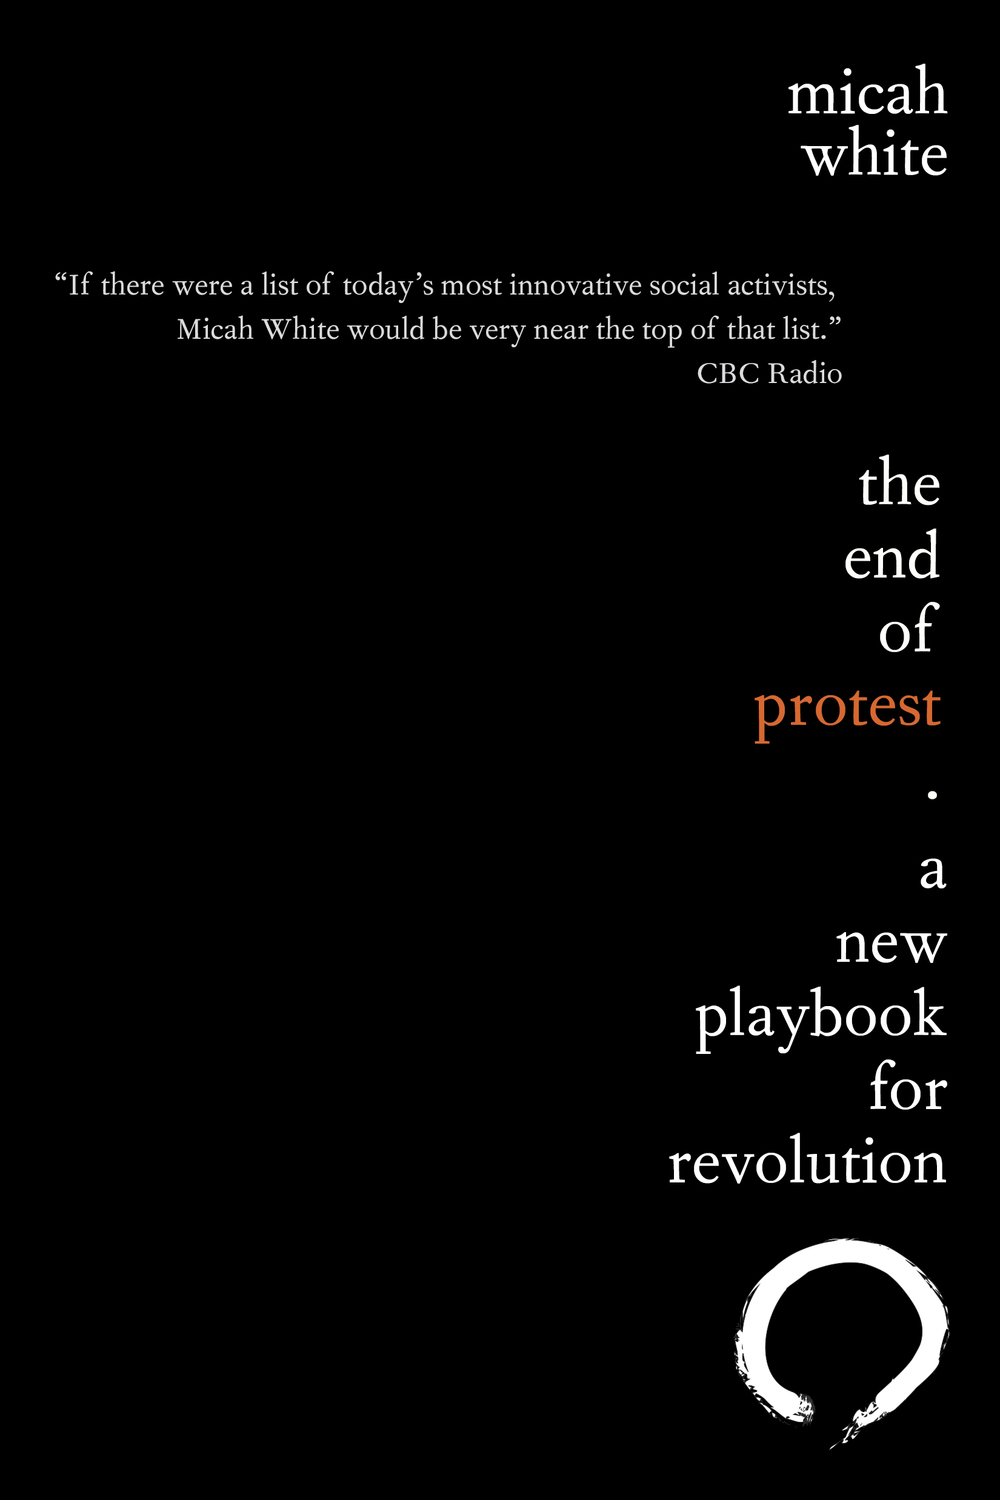 THE END OF PROTEST: A NEW PLAYBOOK FOR REVOLUTION by Micah White will be published on March 15, 2016 by Penguin Random House of Canada under the Knopf Canada imprint.